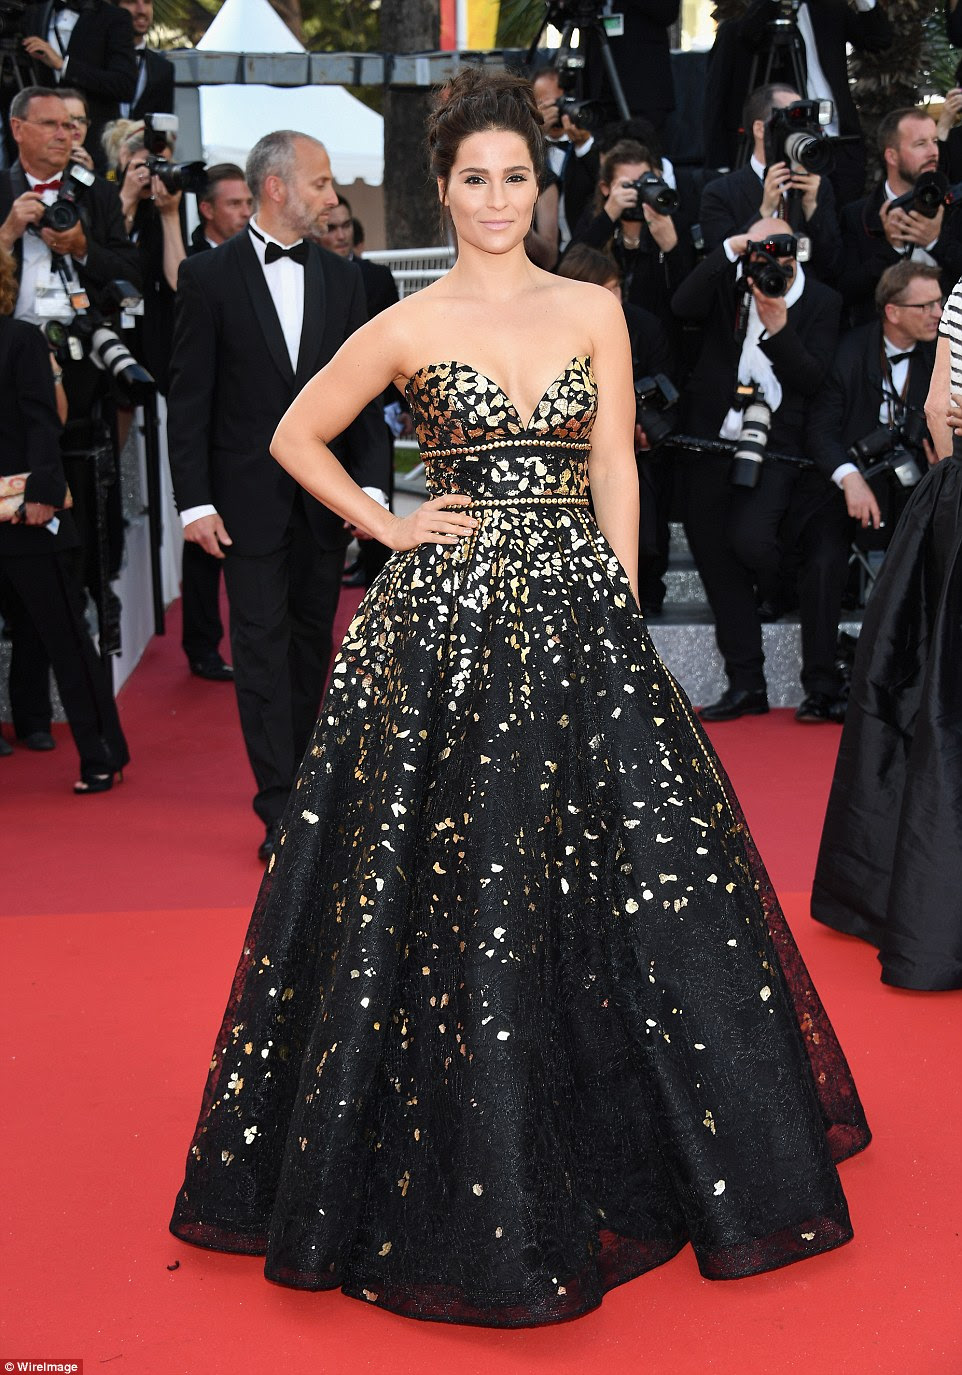 Gold flecks:Gianna Simone dazzled in her strapless number, which was brought to life with gold flecks